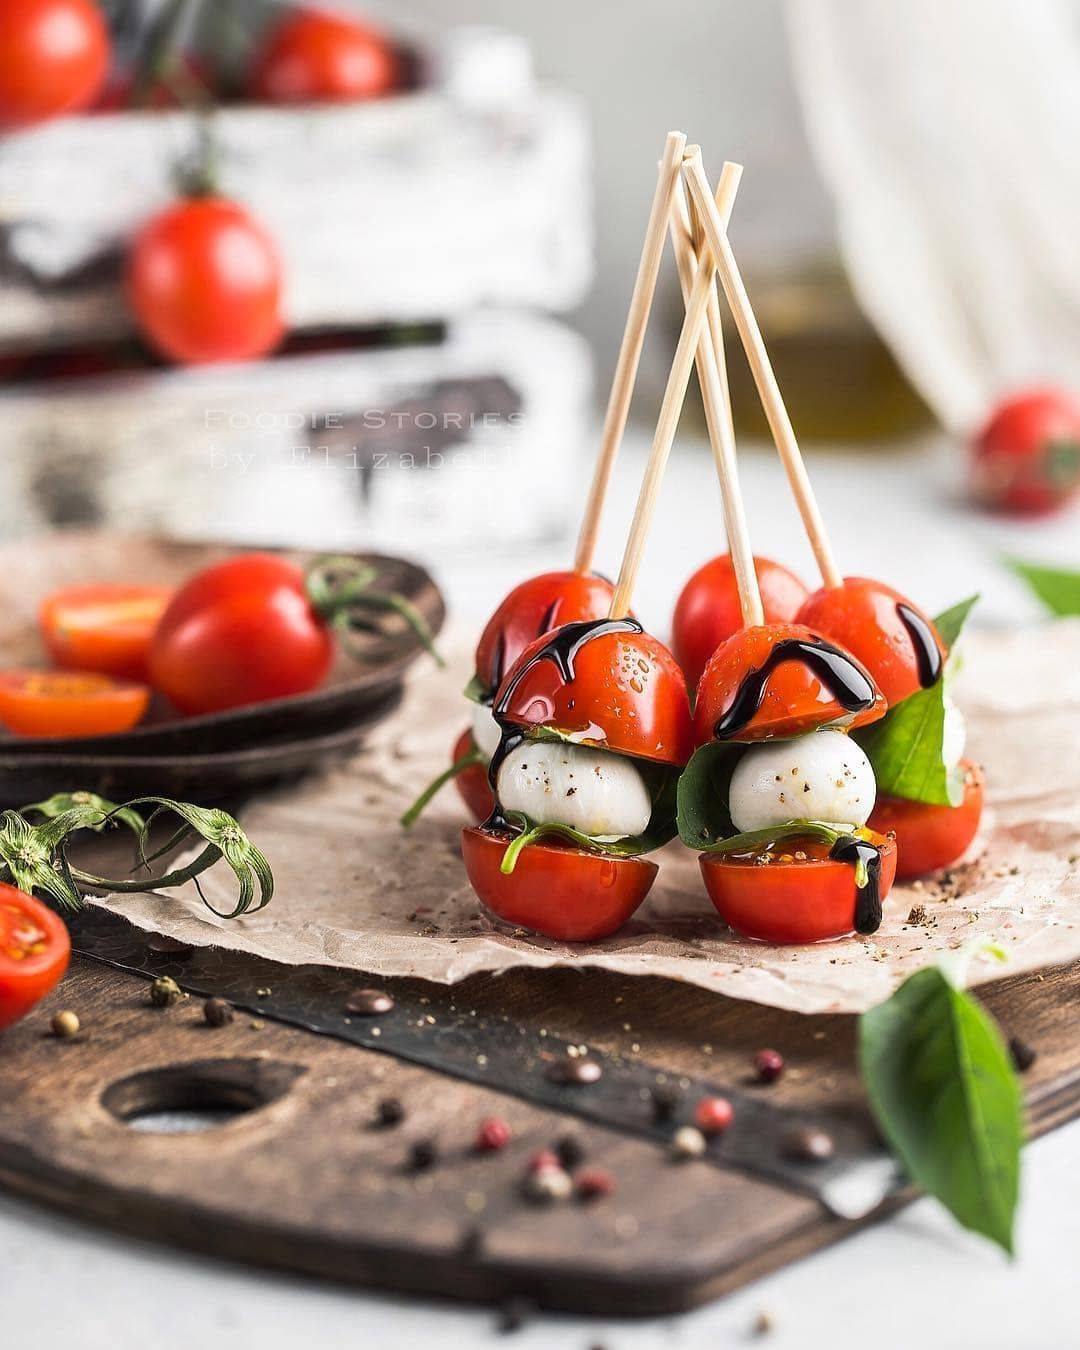 Join Us On A Culinary Journey Across The World For Recipe And More Inspiration Do Visit Photographer Lissakiri October 31 2018 Food Recipes Culinary